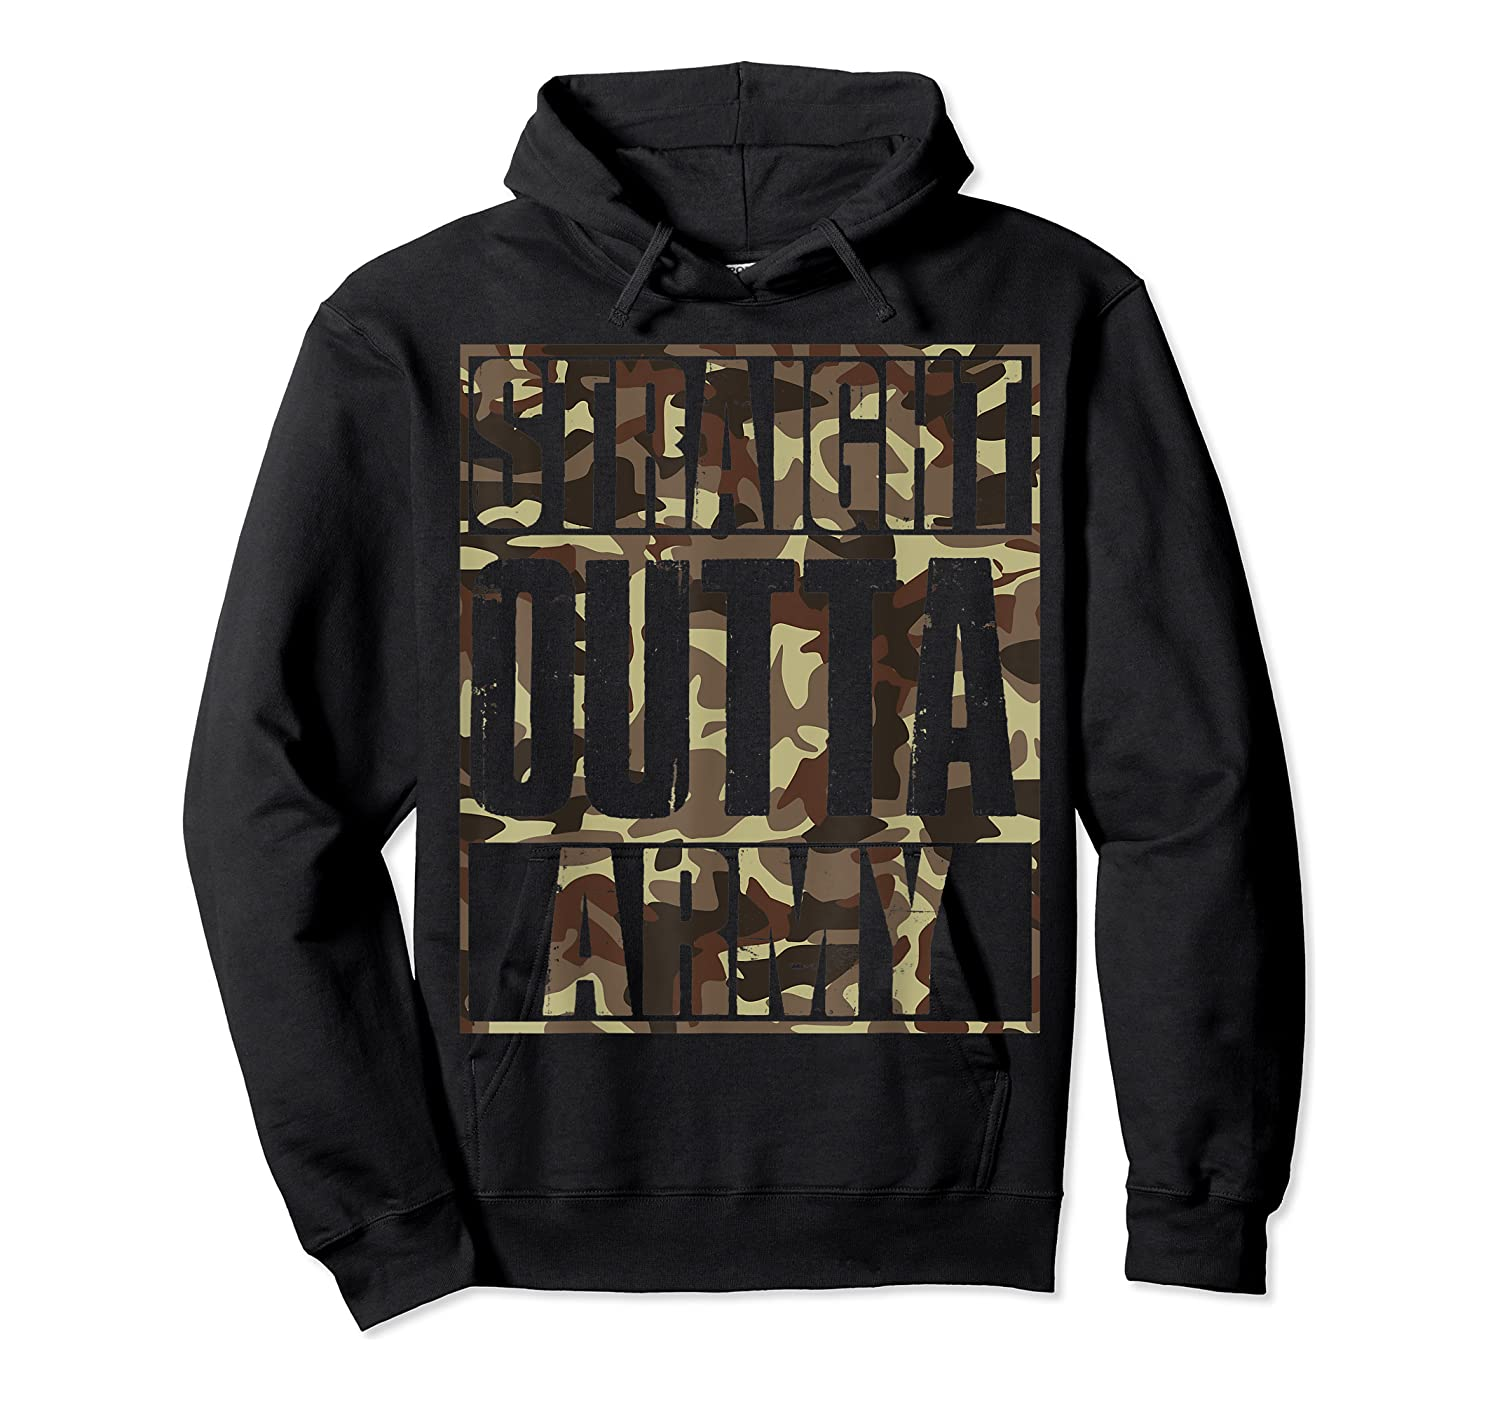 Straight Outta Army Veteran American Military Pride Gift Shirts Unisex Pullover Hoodie